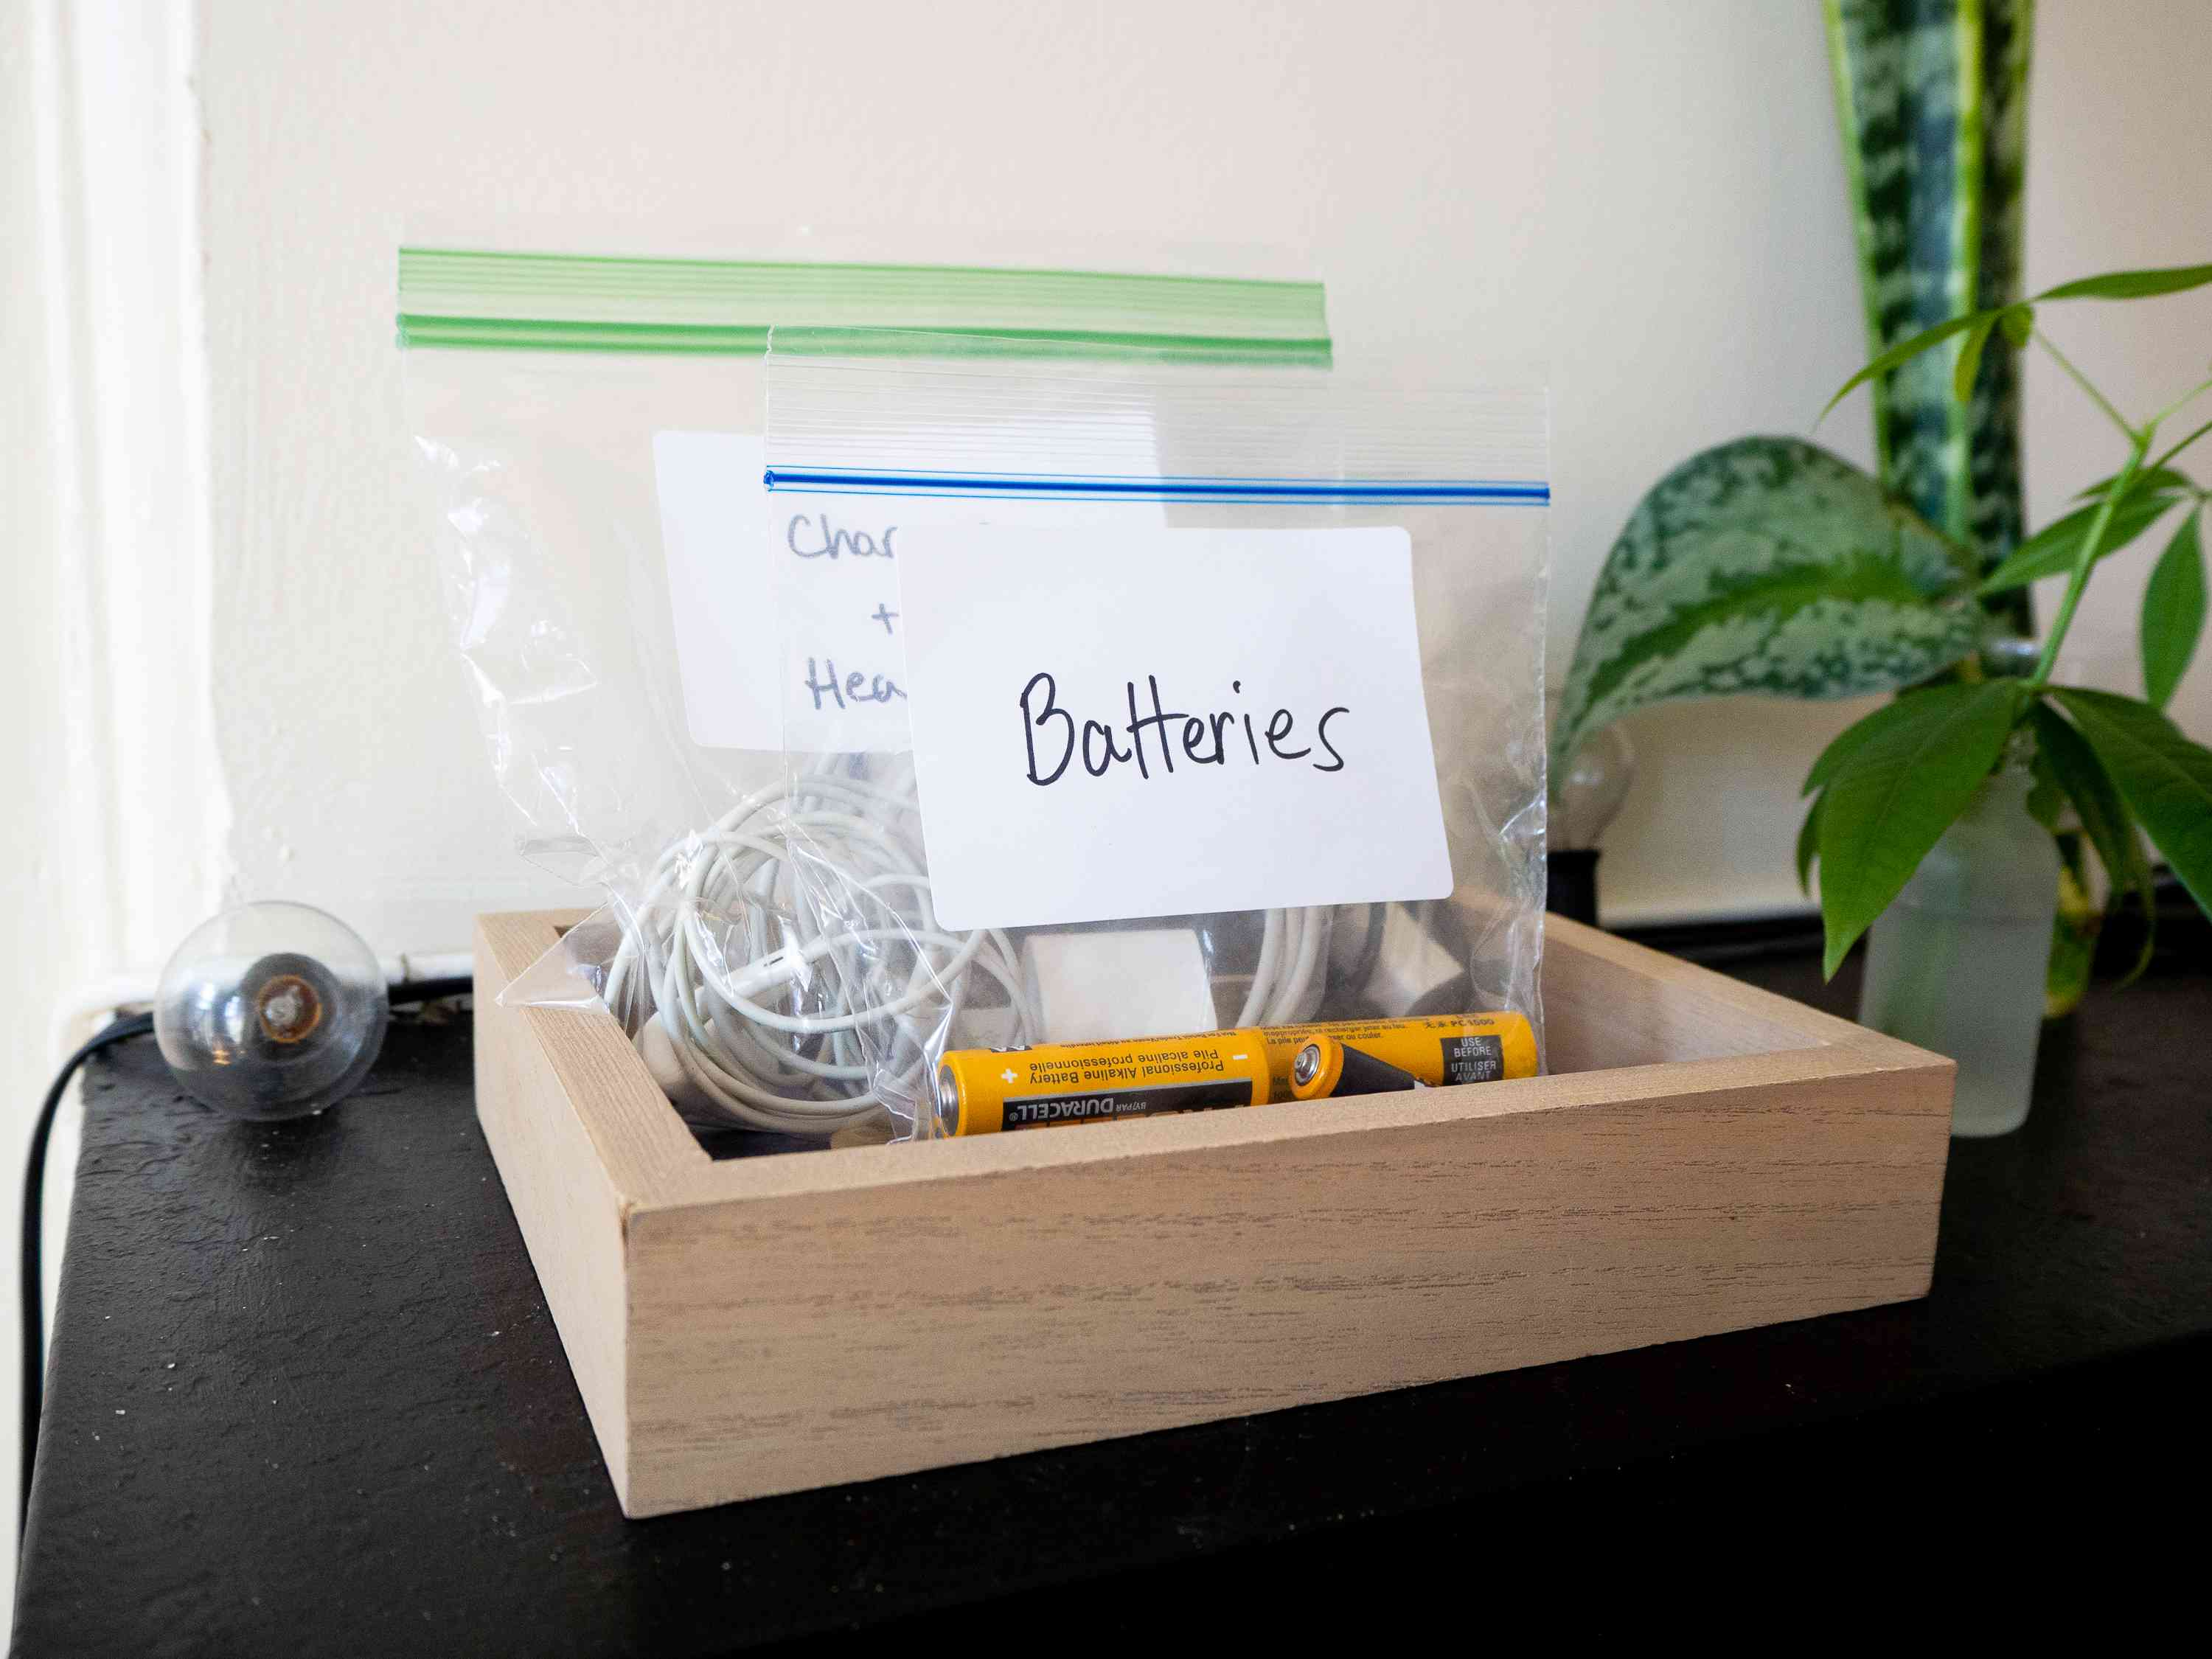 Batteries and chargers organized in small plastic bags next to houseplants